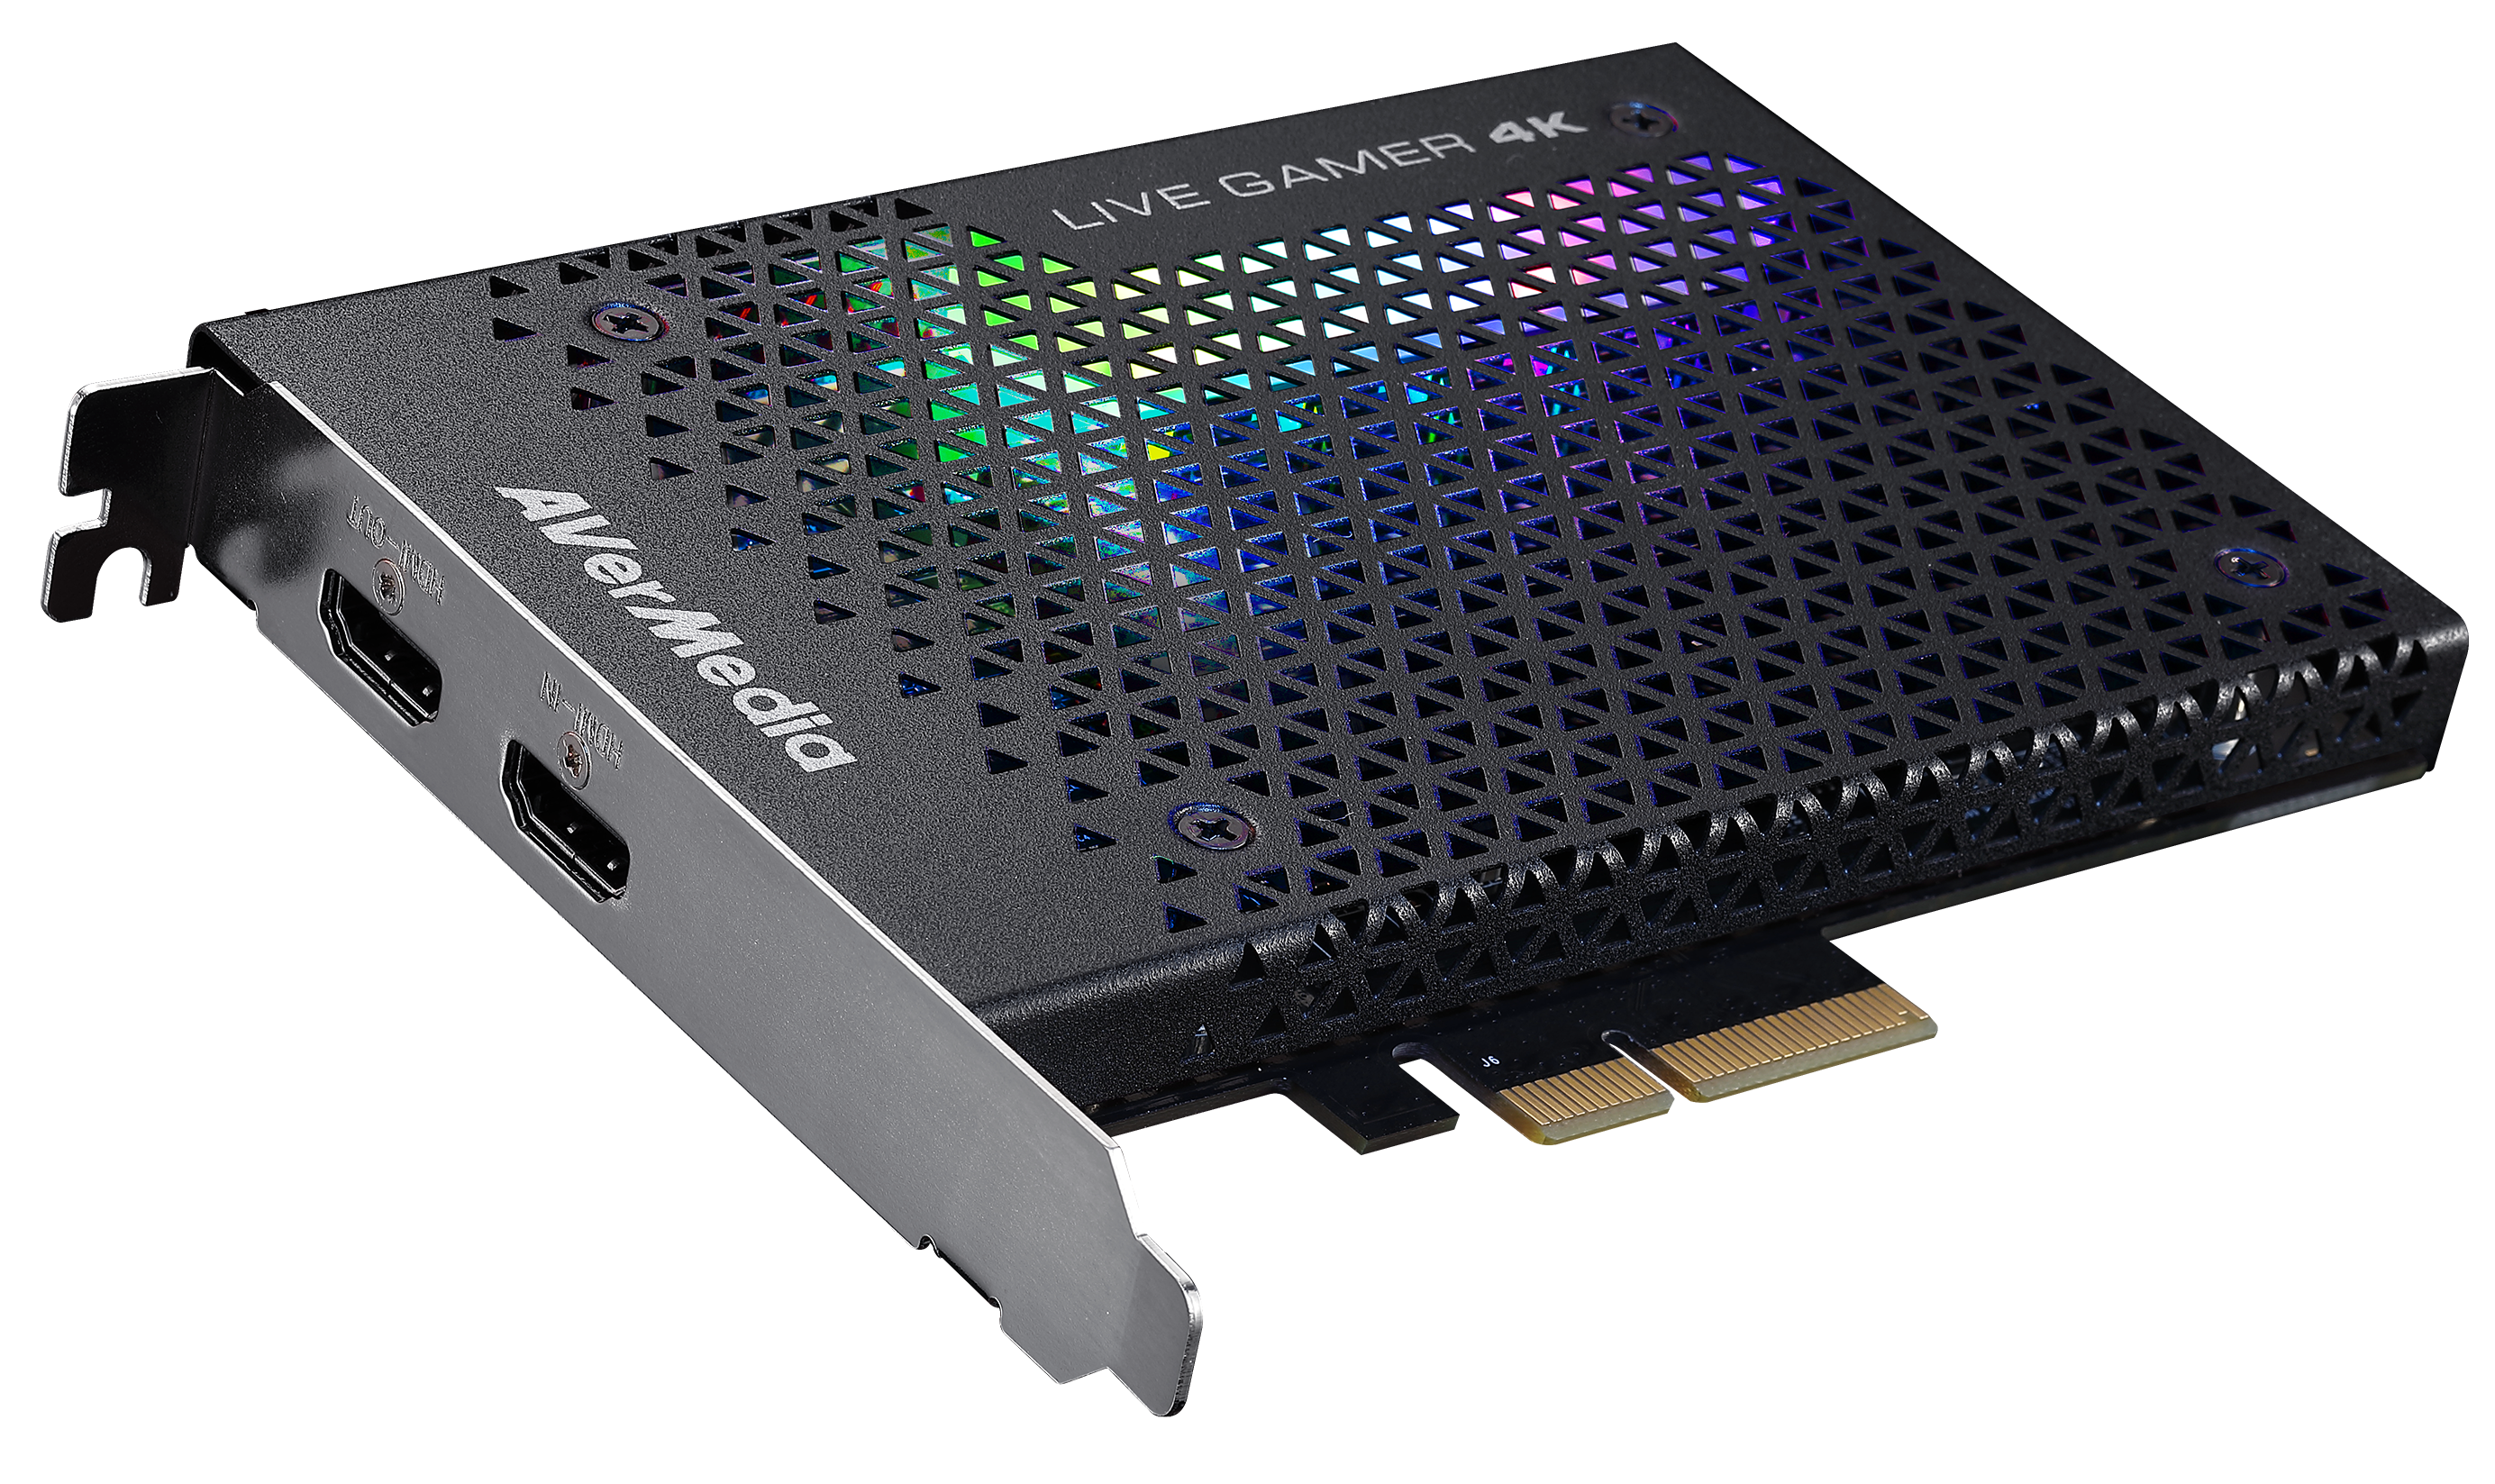 AVerMedia Live Gamer 4K Capture Card Review - HDR and 4K60 Support